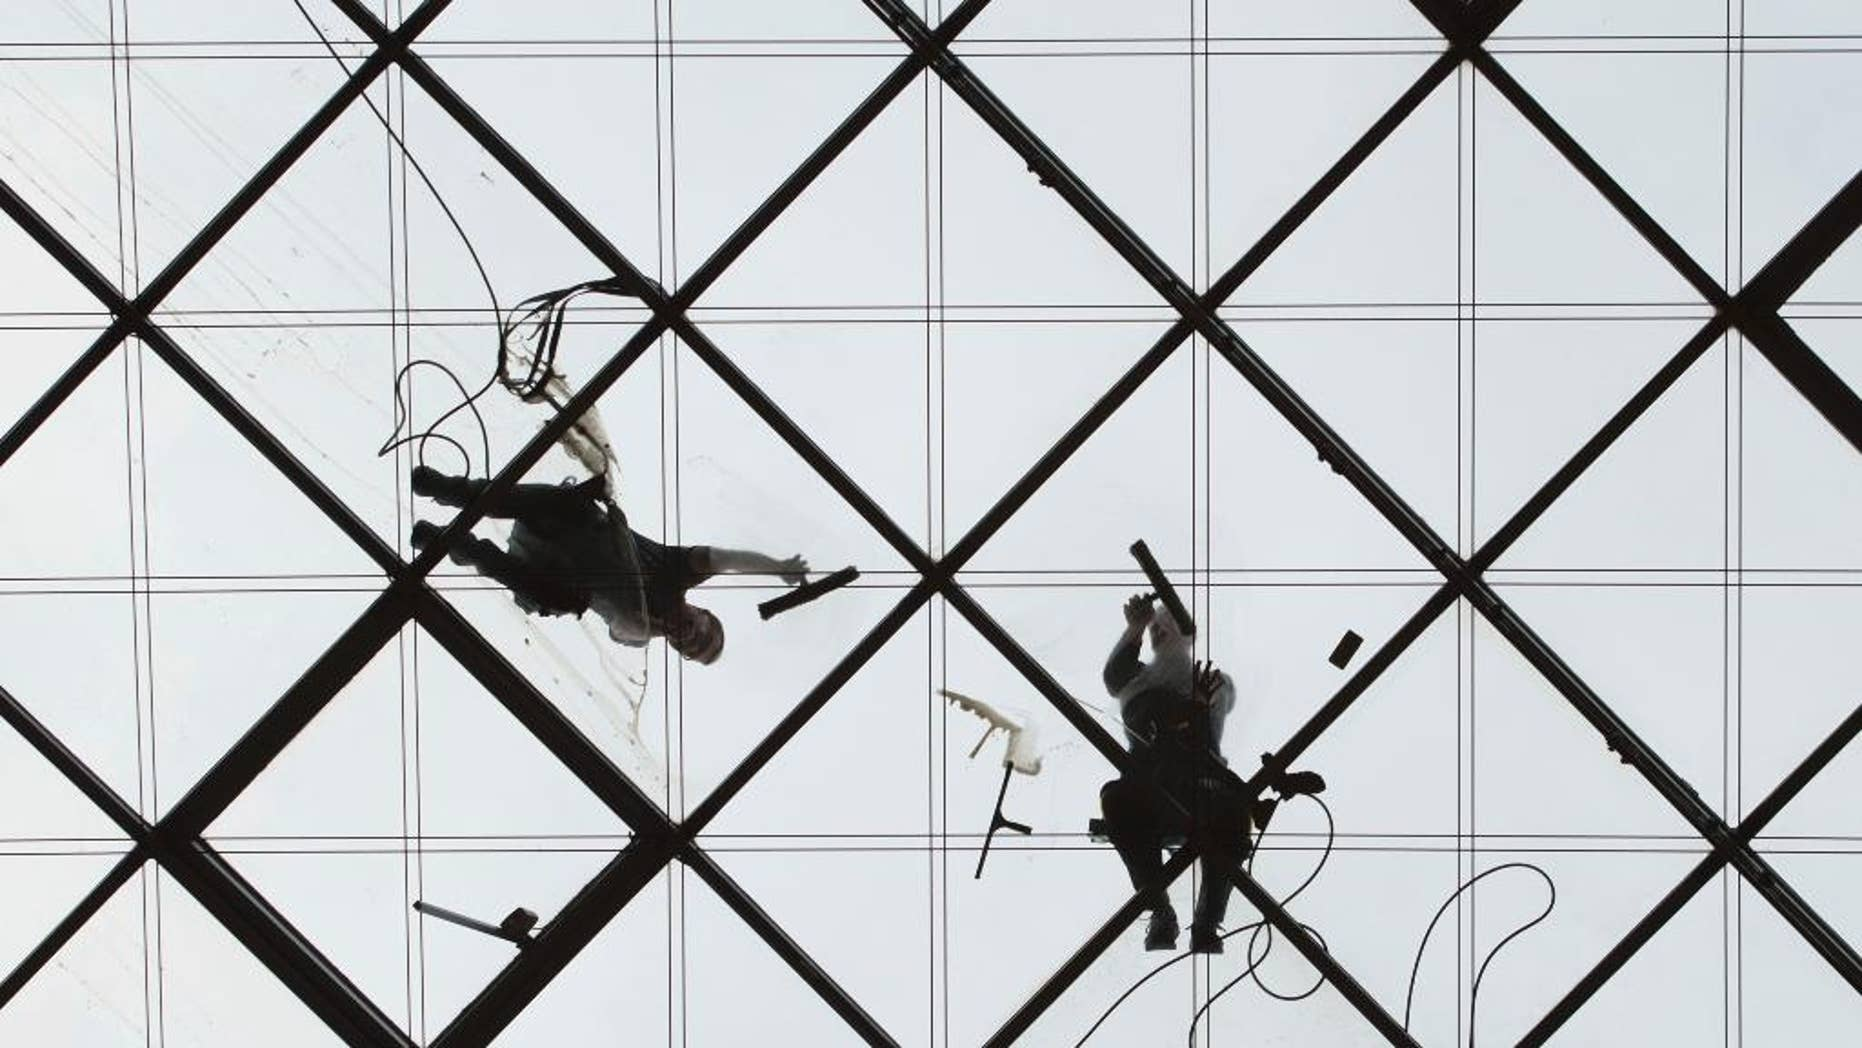 Two workers clean the glass roof of the World Trade Center in Dresden, eastern Germany, Monday, April 3, 2017. (Sebastian Kahnert/dpa via AP)